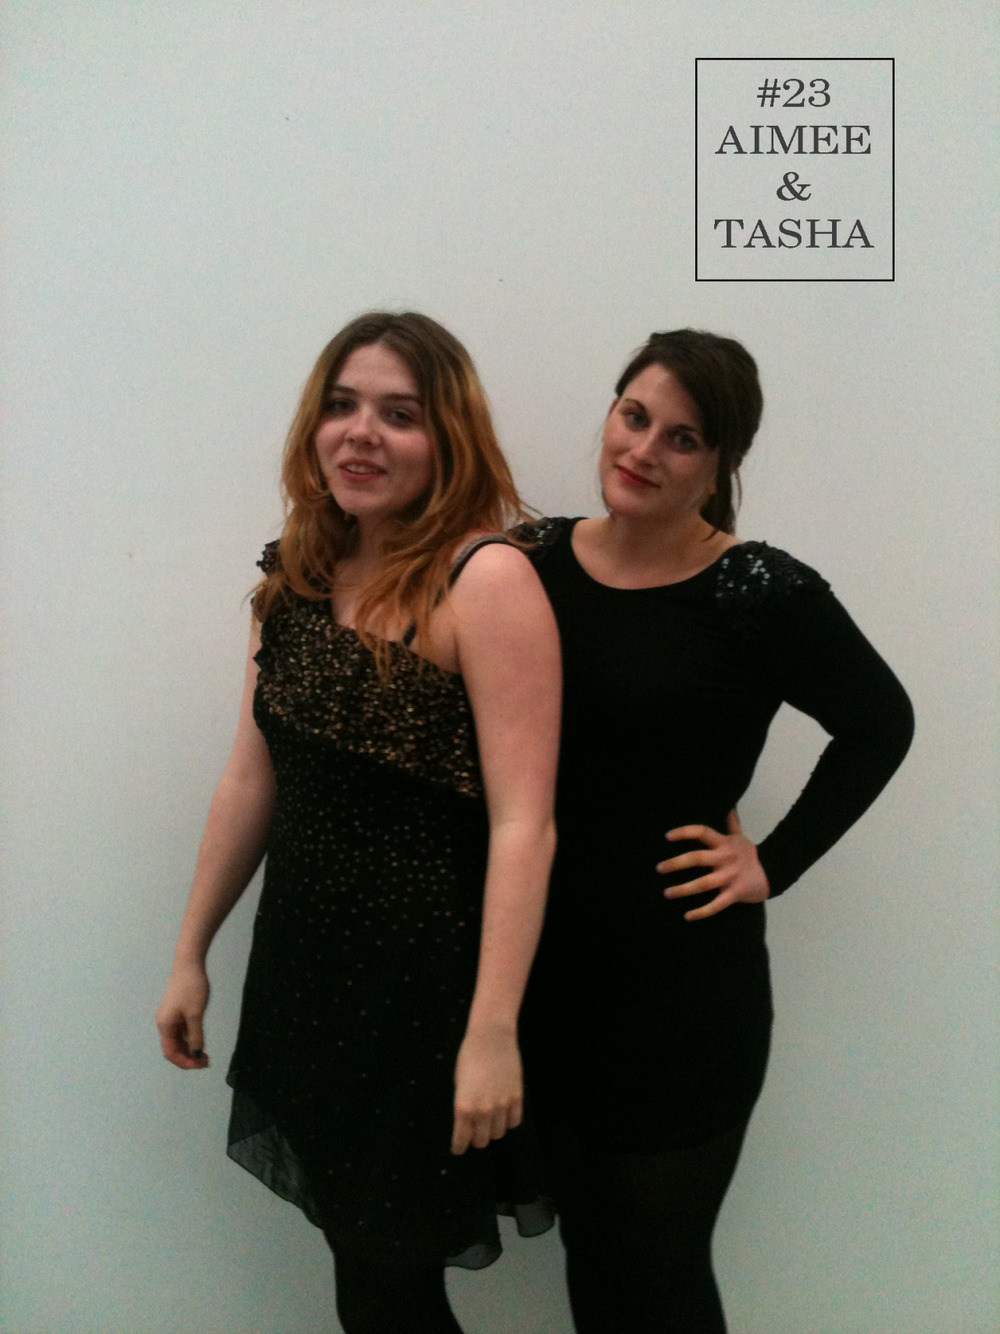 Christmas is fast approaching and here at Folk Tasha and Aimee get into the festive spirit with the help of a few sequins. In black and gold dresses they are ready to sparkle on into 2013 (Mayan apocalypses aside of course).  Tasha Dress: Miss Selfridge Aimee Dress: Topshop